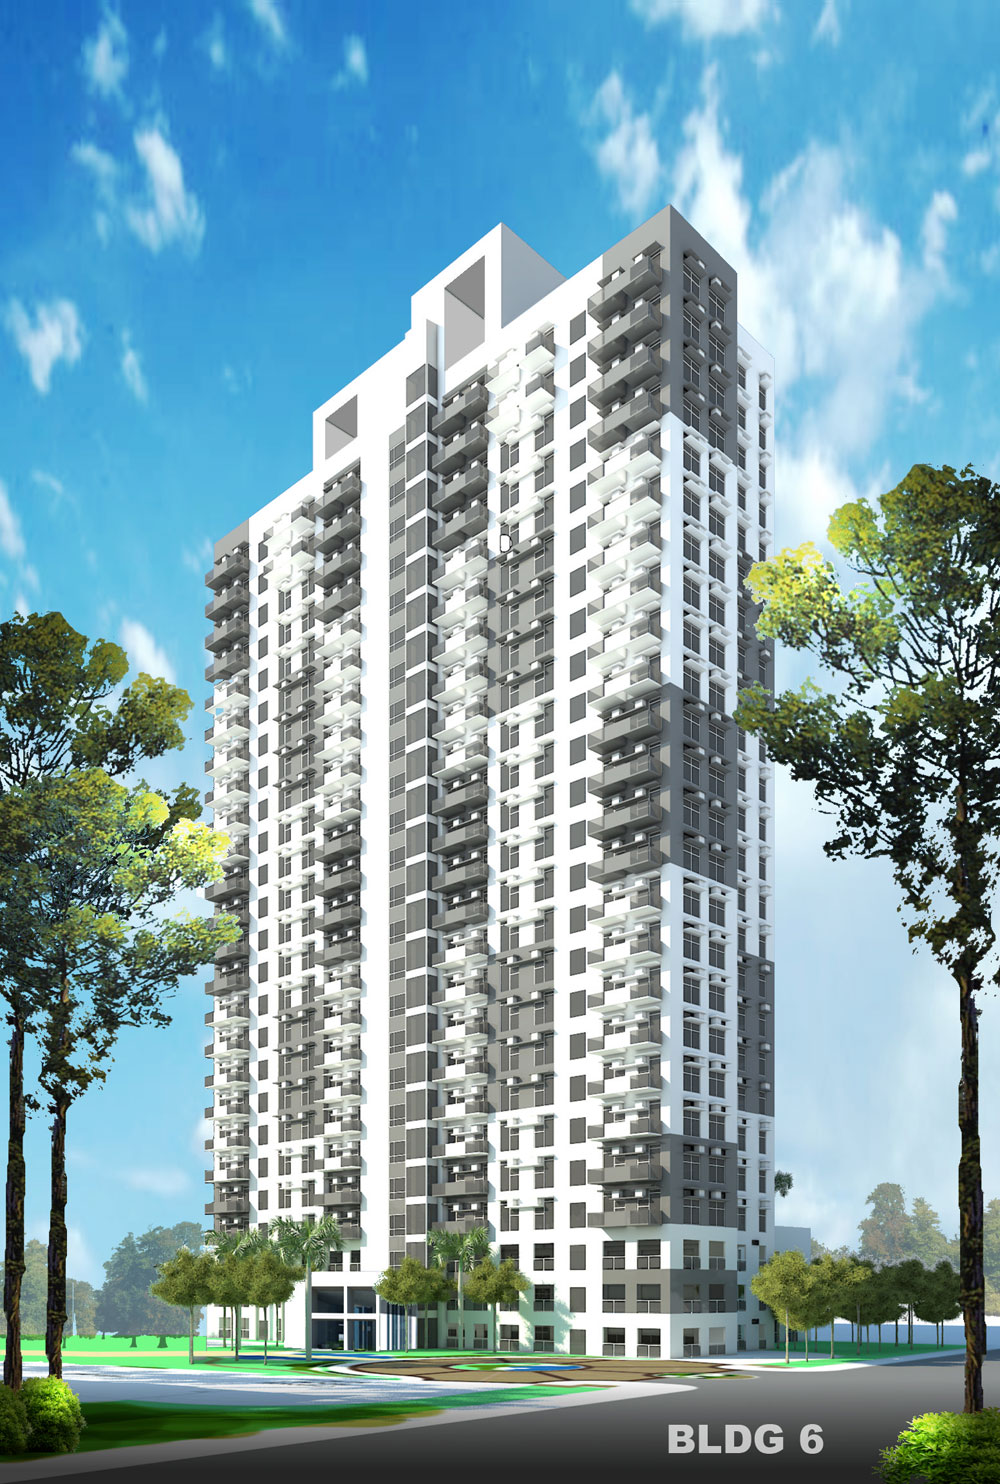 KASARA Urban Resort Residences is an enclave of six residential towers with strikingly deep earth-tone palettes. Each tower's luxurious contemporary architecture is designed to perfectly blend with the community's nature-rich setting. Simplify your lifest